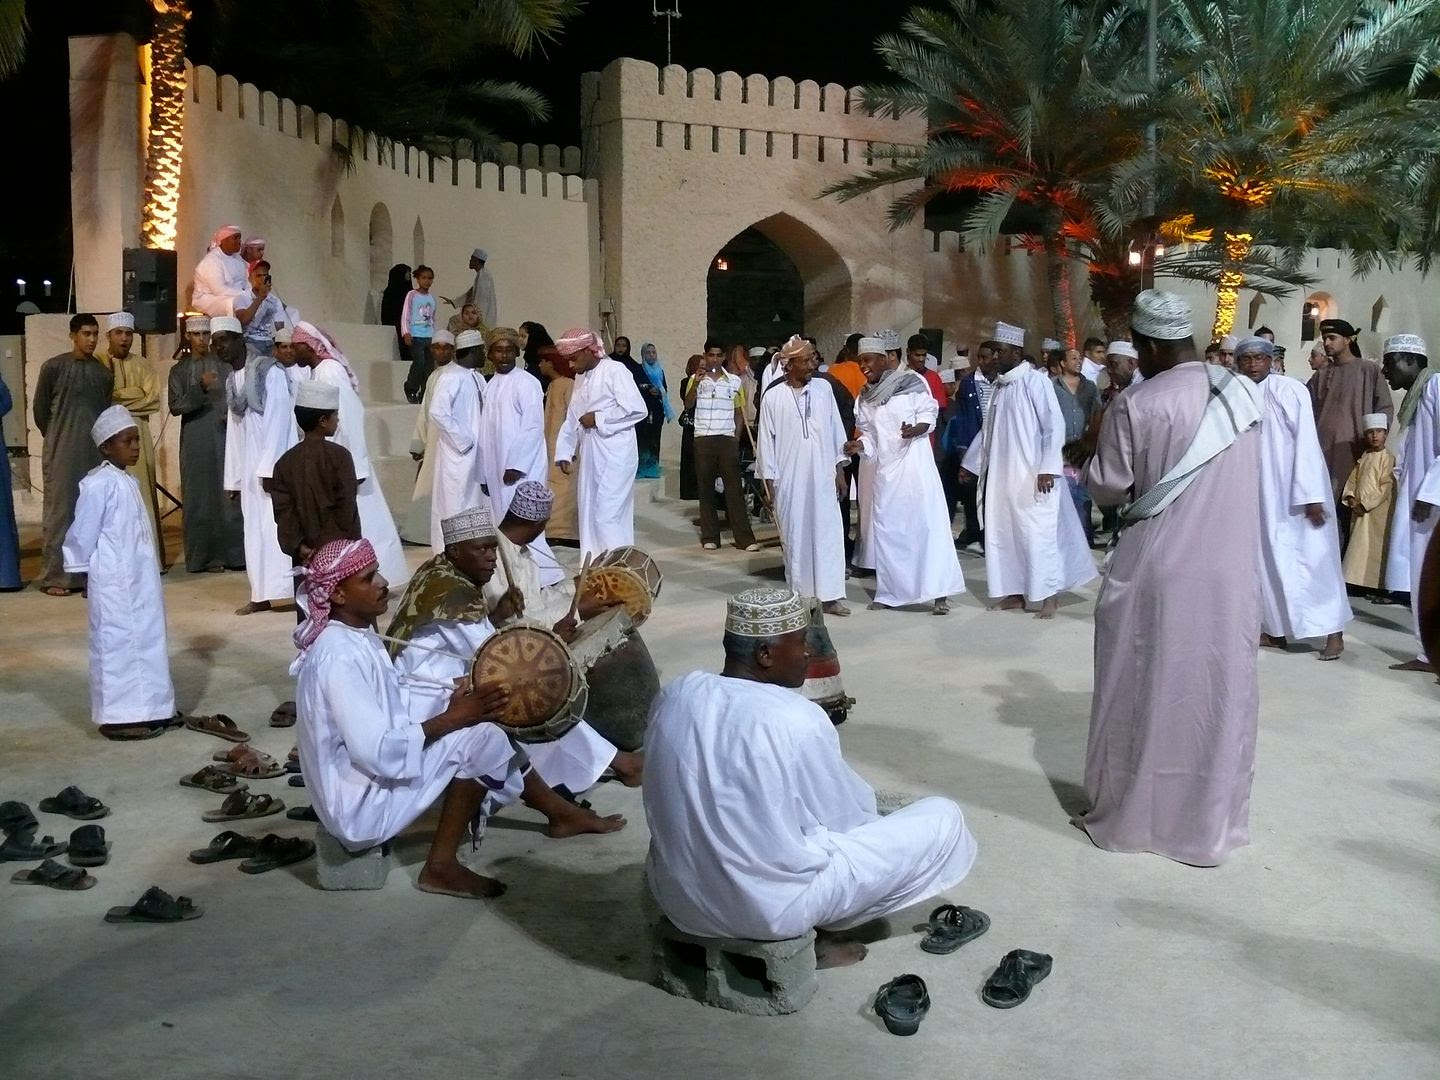 2012.02.21, Traditional singing and dancing (Muscat, Oman)